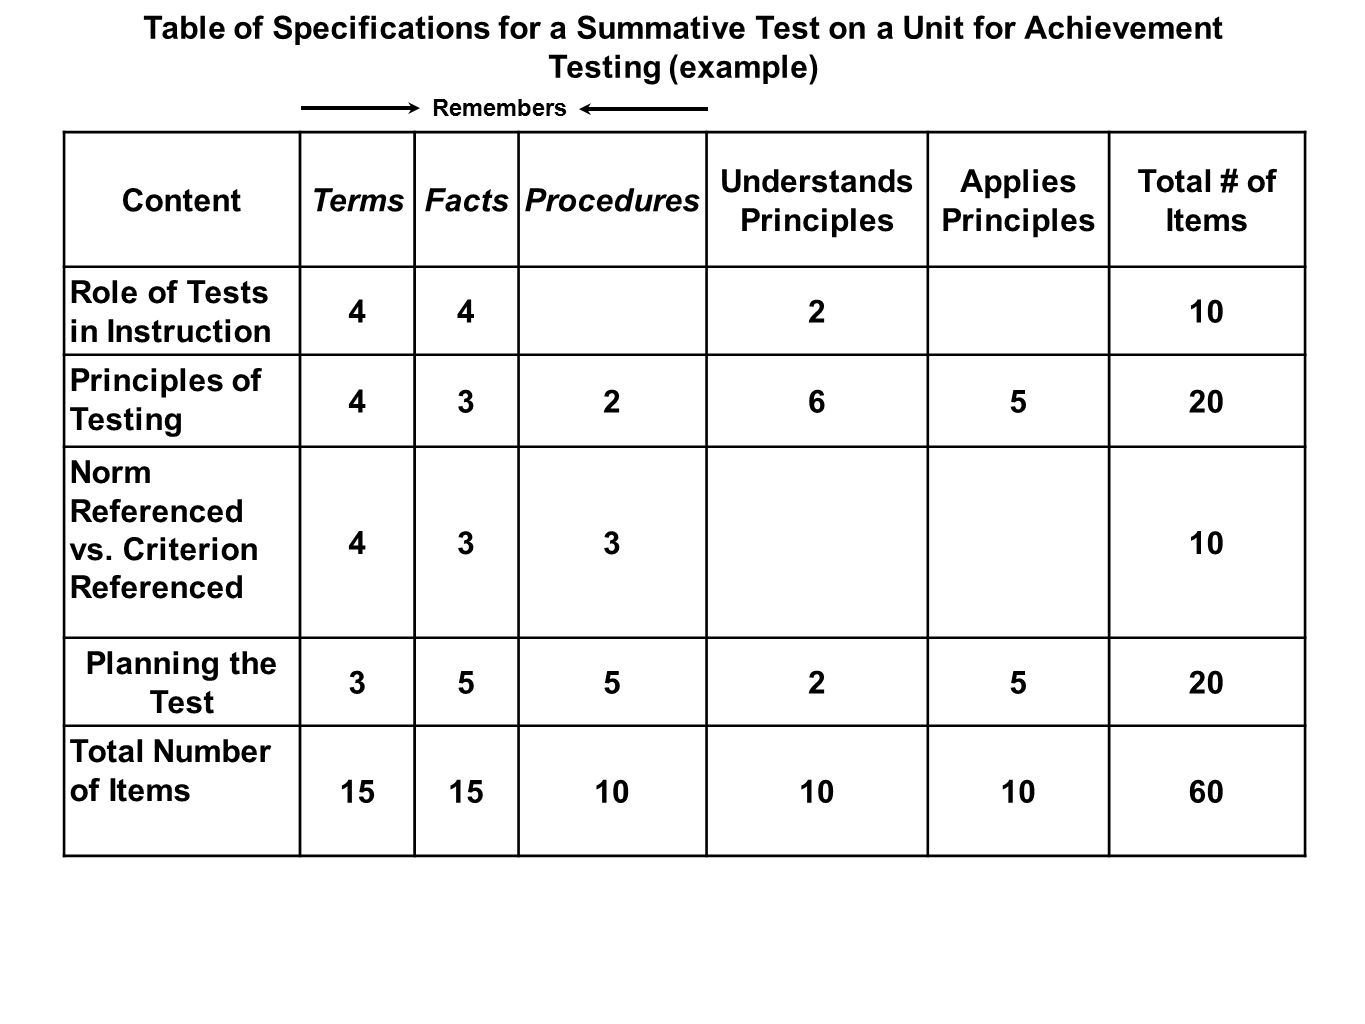 21 images of template for table of specification test | netpei. Com.